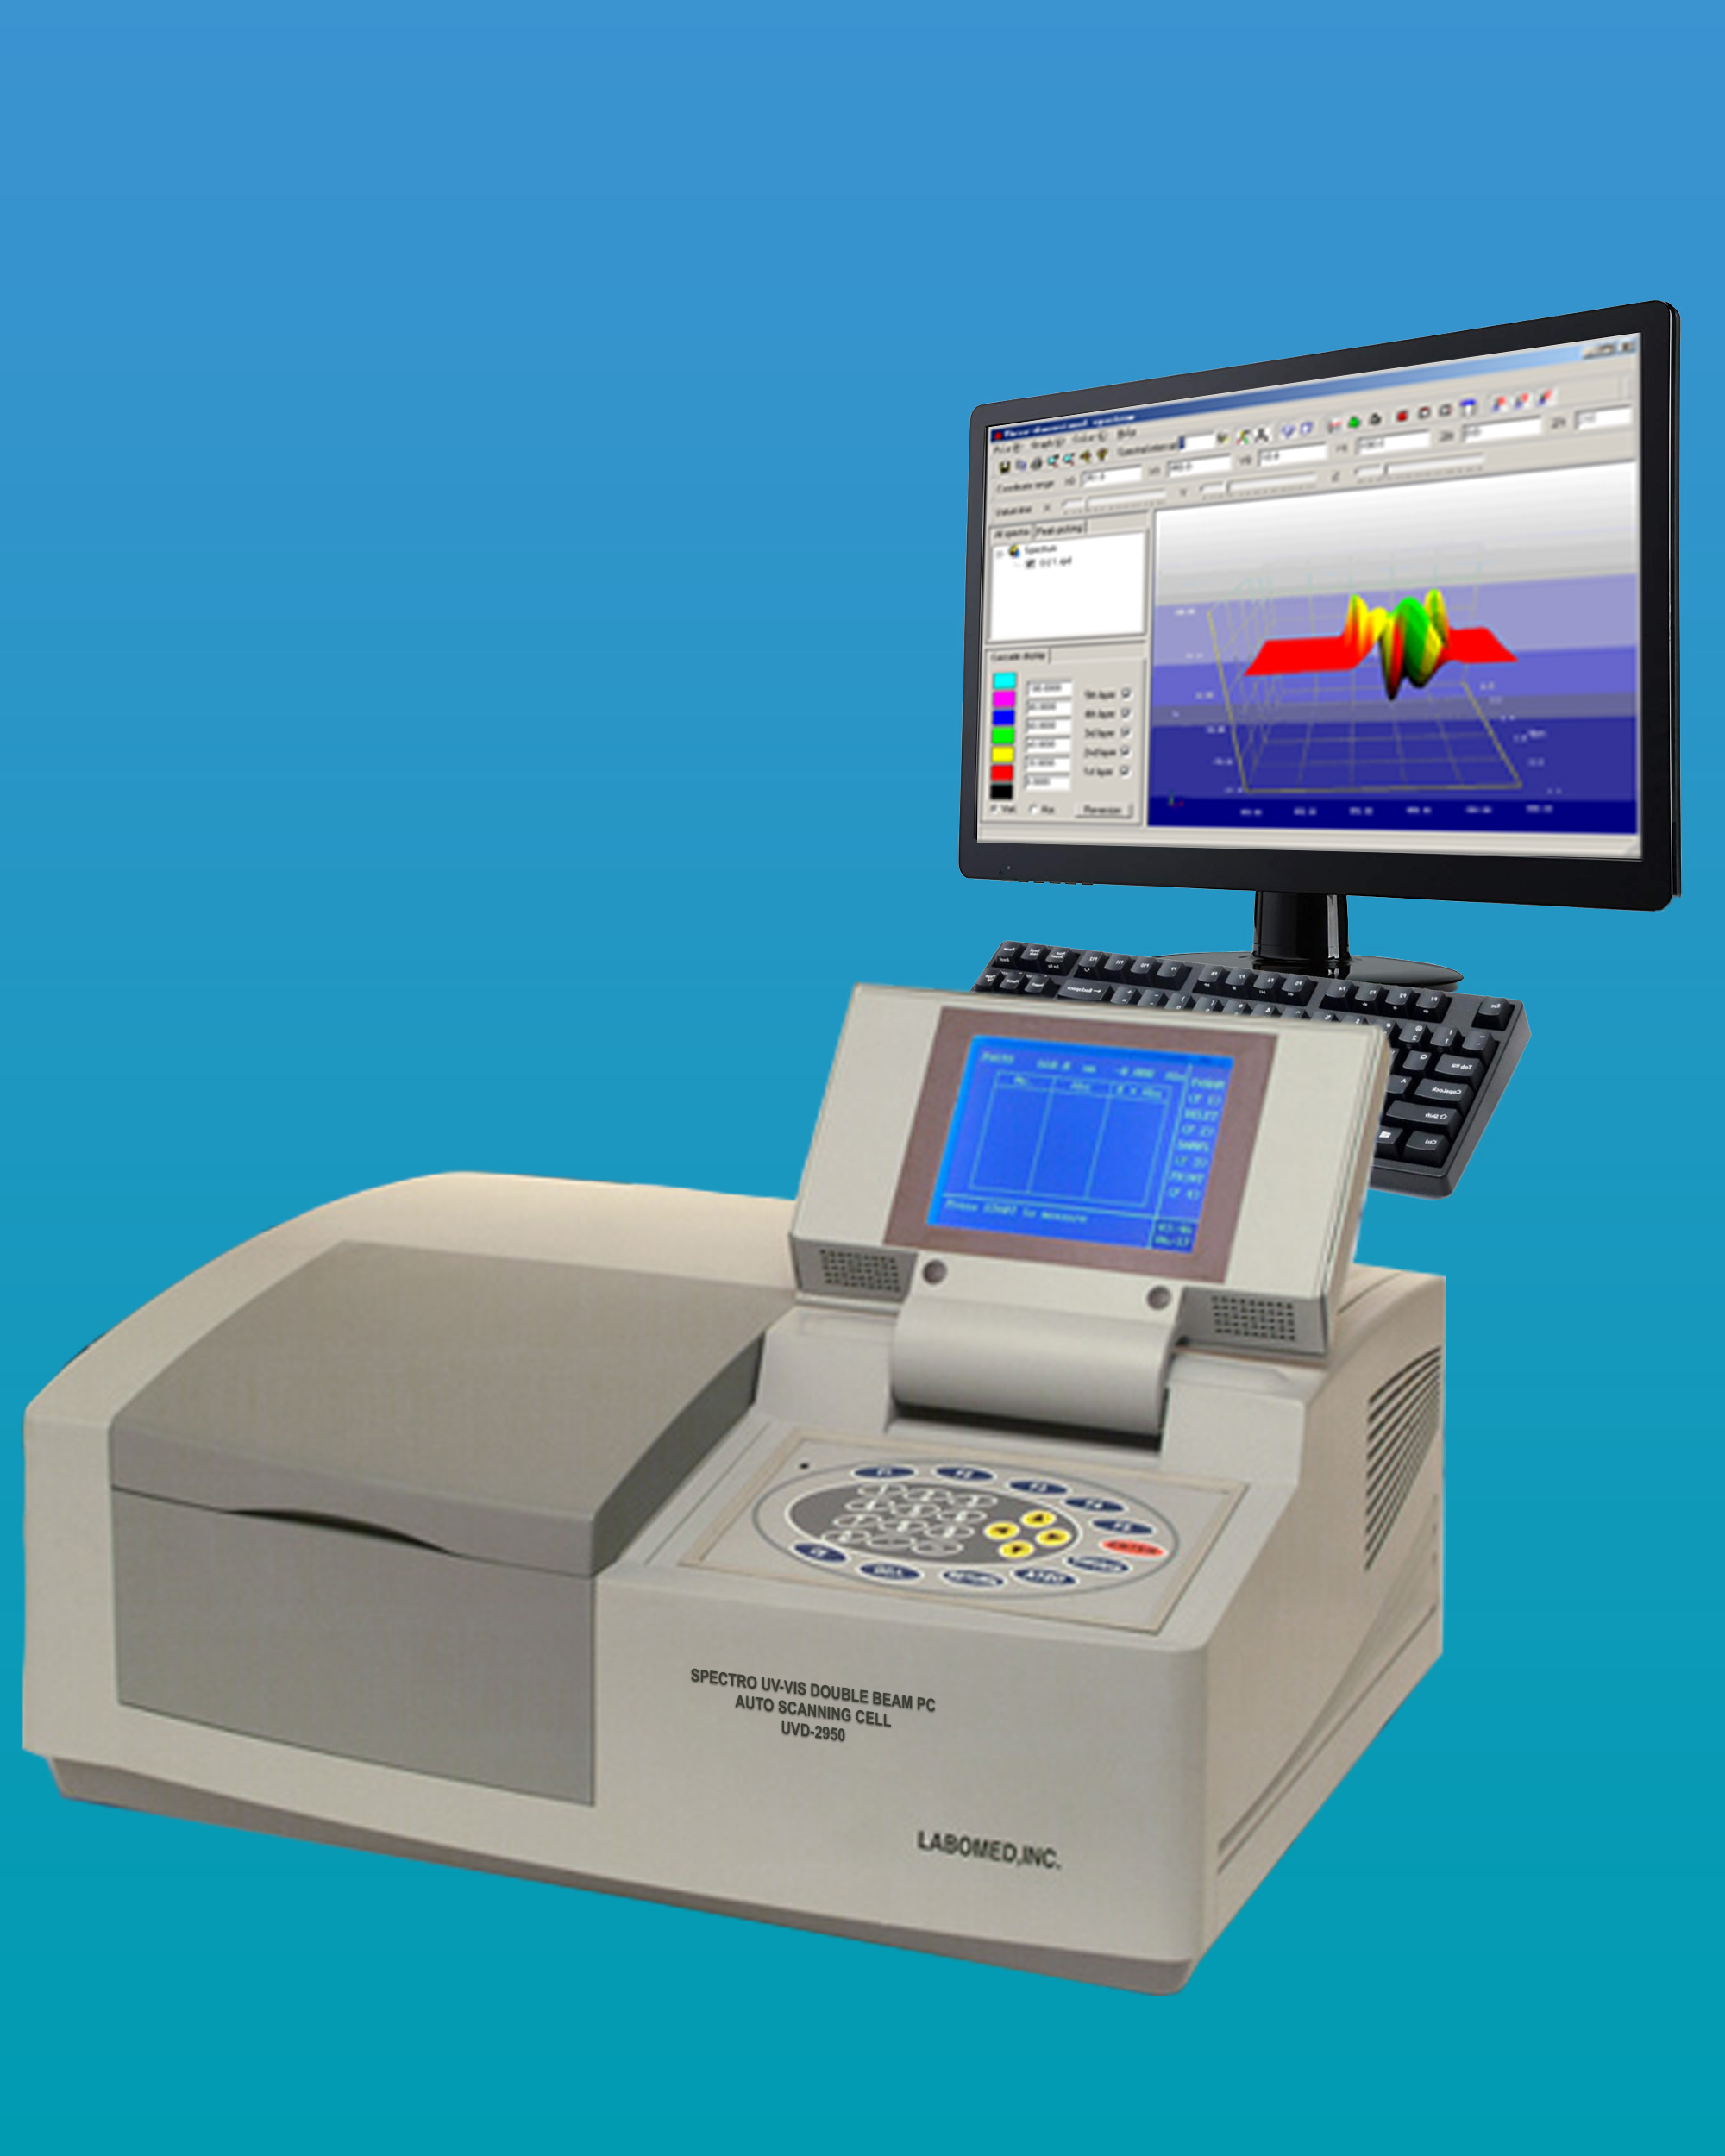 [UVD-2950] Spectro UV-VIS Double Beam PC Scanning Spectrophotometer